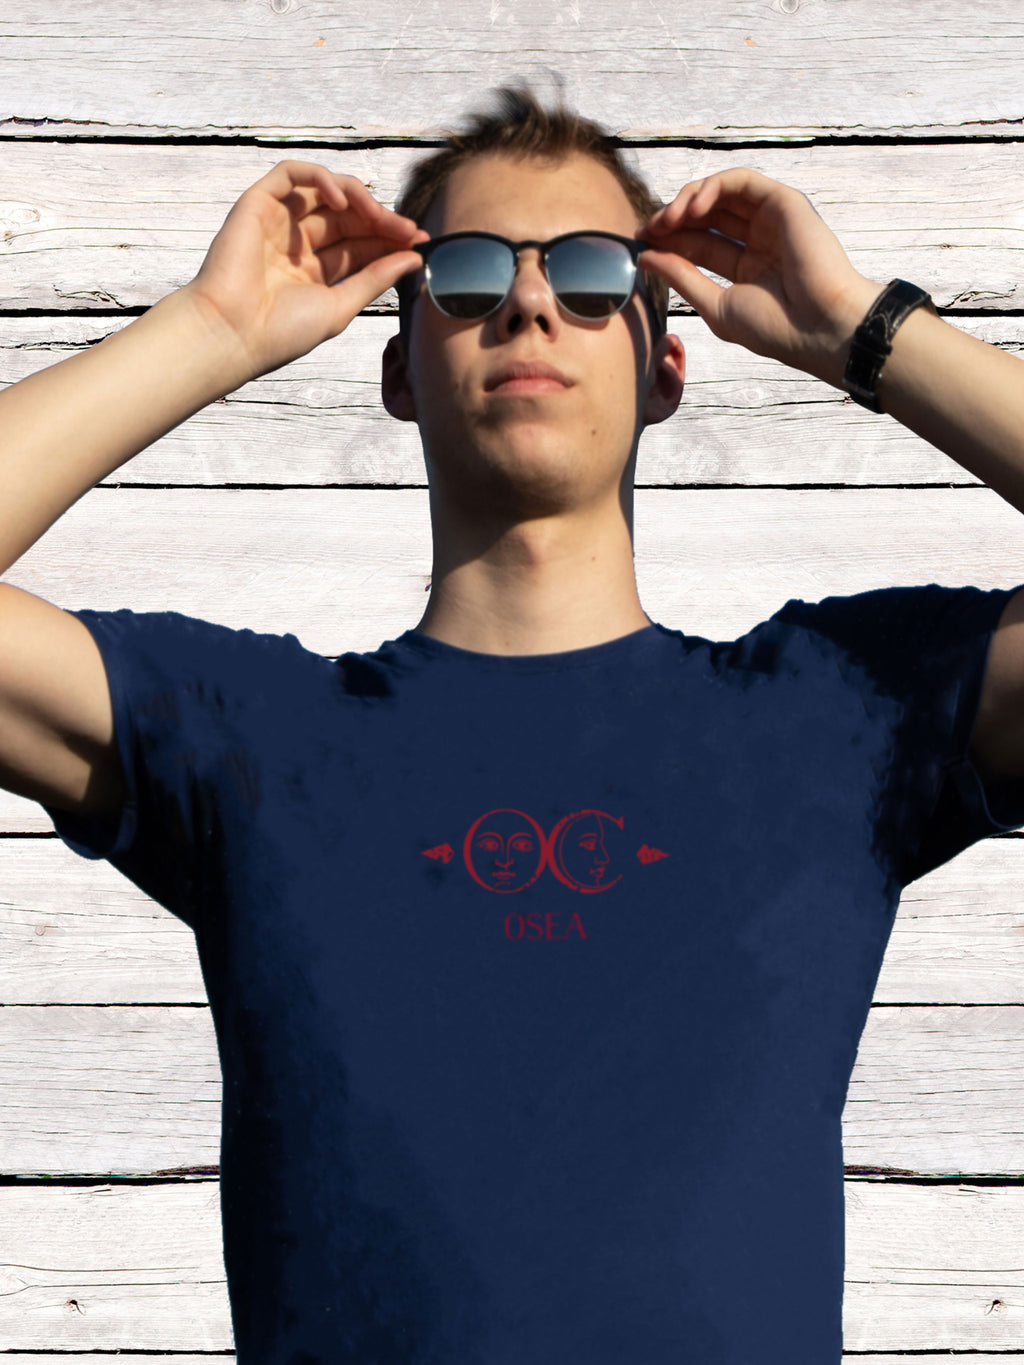 Osea T-shirt - Sun 'n Moon - Blue - Men's